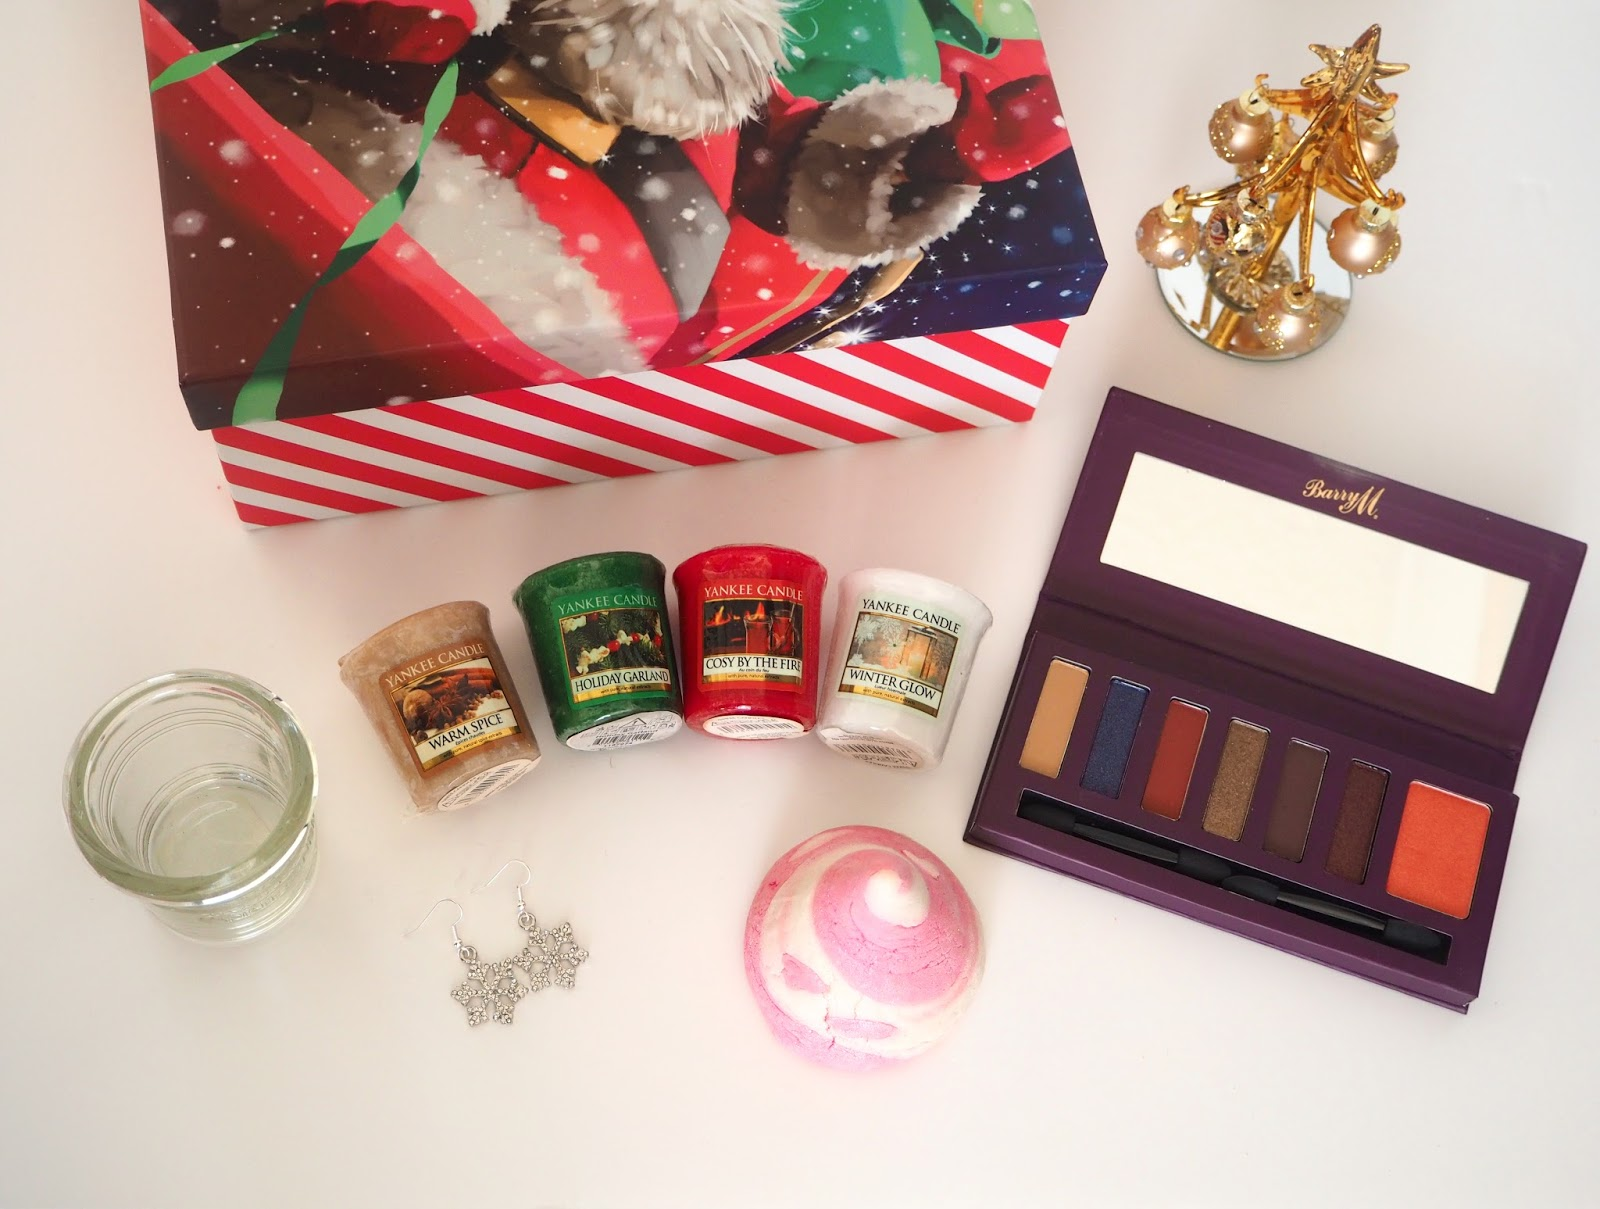 Christmas Gift Bundle Giveaway Katie Kirk Loves, Competition, Prize, Sweepstakes, Giveaway, Beauty, Lush Cosmetics, Candy Mountain, Barry M, My Beaded Treasures Jewellery, Yankee Candles, Candles